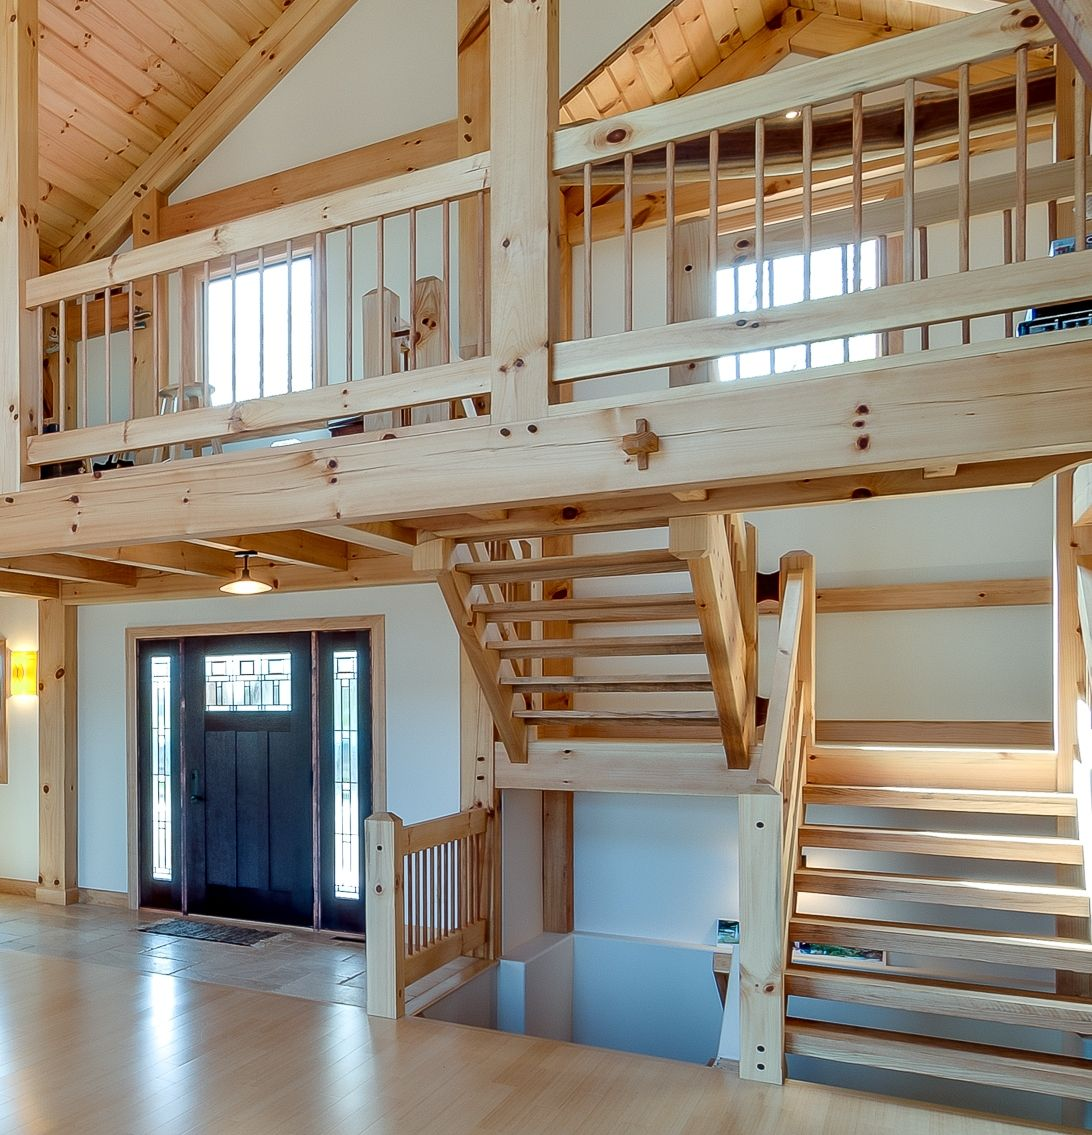 Different Types Of Staircases: 10 Most Popular Light For Stairways Ideas, Let's Take A